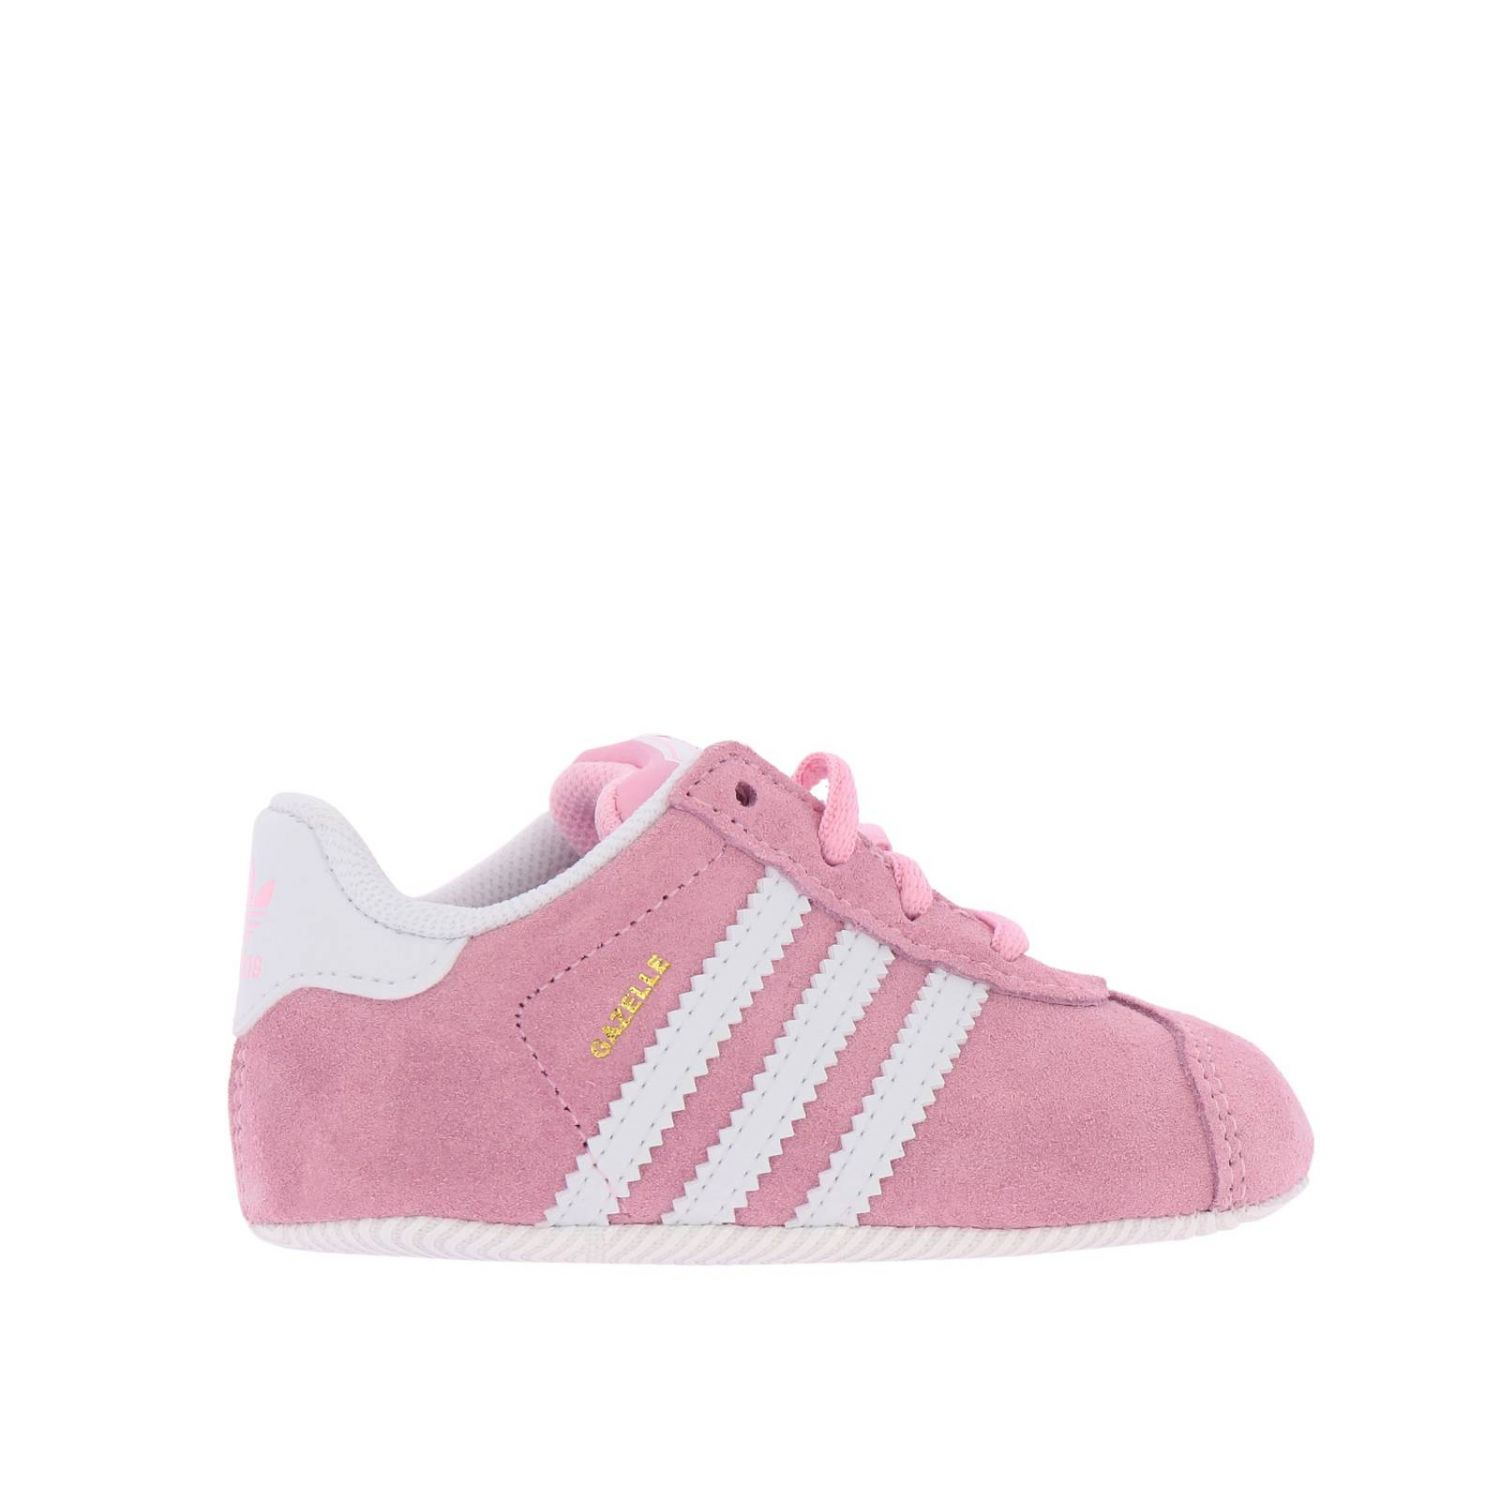 Shoes Adidas Originals: Shoes kids Adidas Originals pink 1